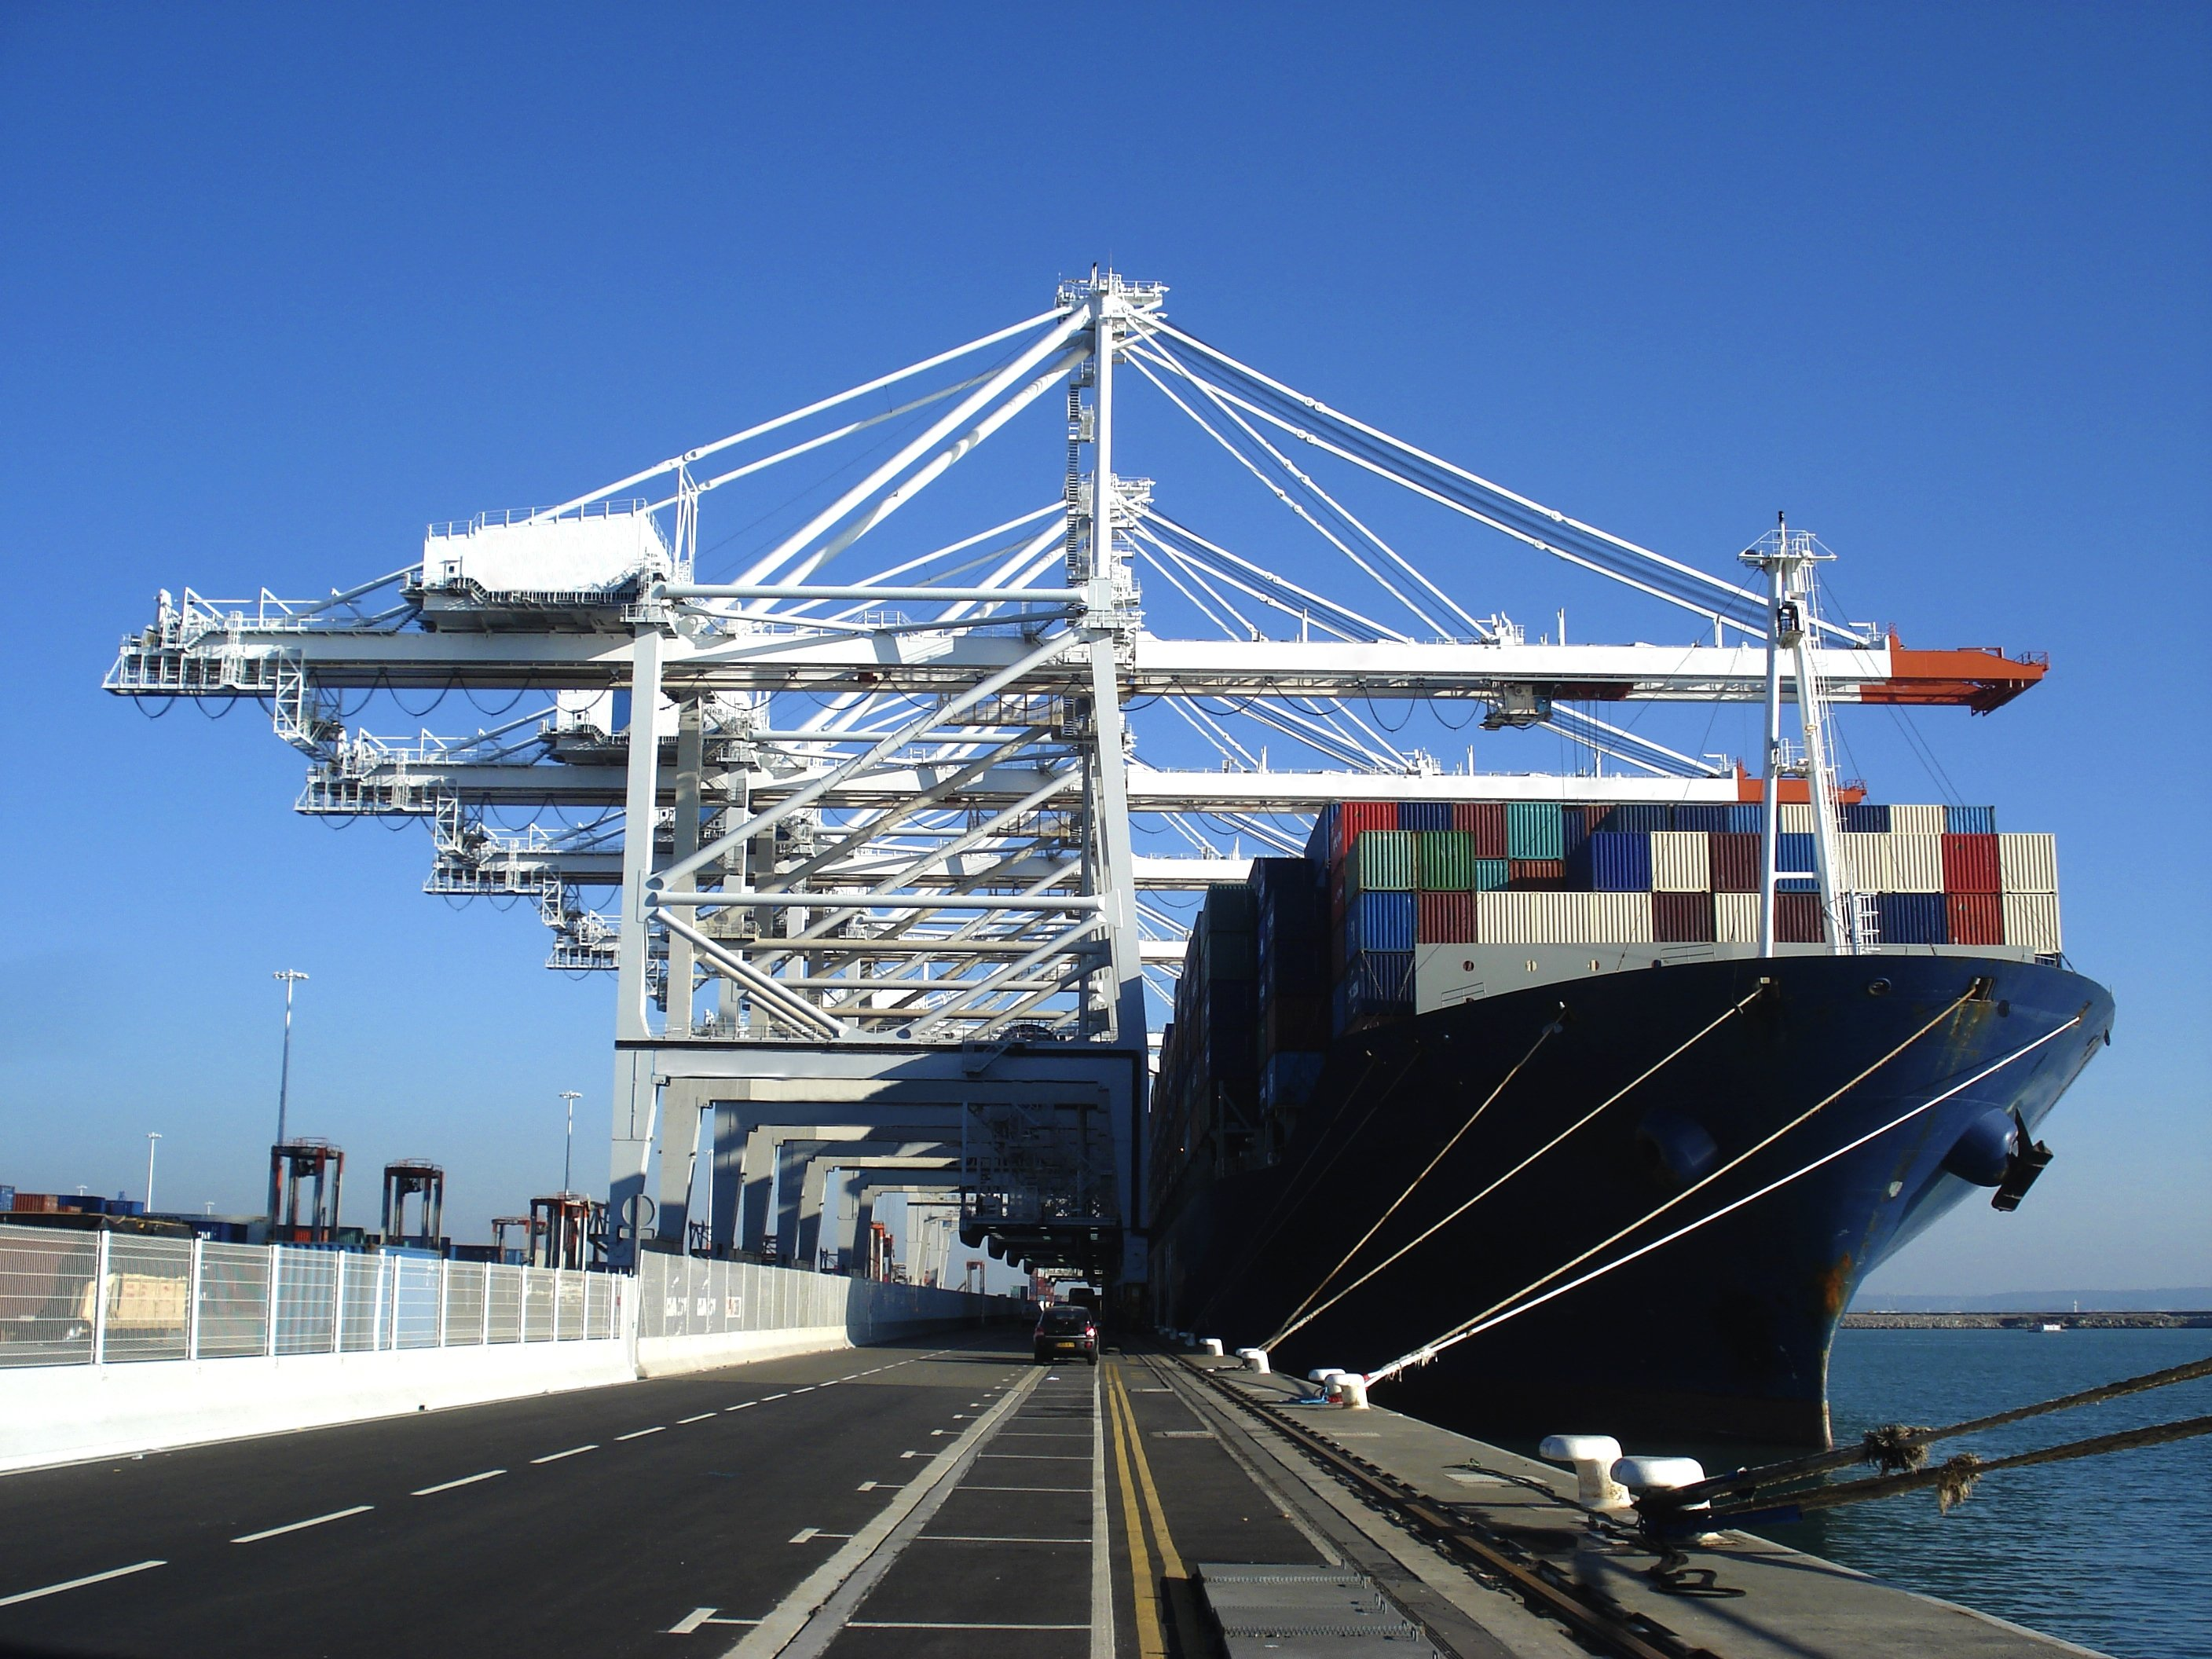 A huge cargo container ship at the commercial loading dock of Le Havre, the second-largest French port and the fifth-largest North European port. (Shutterstock Photo)